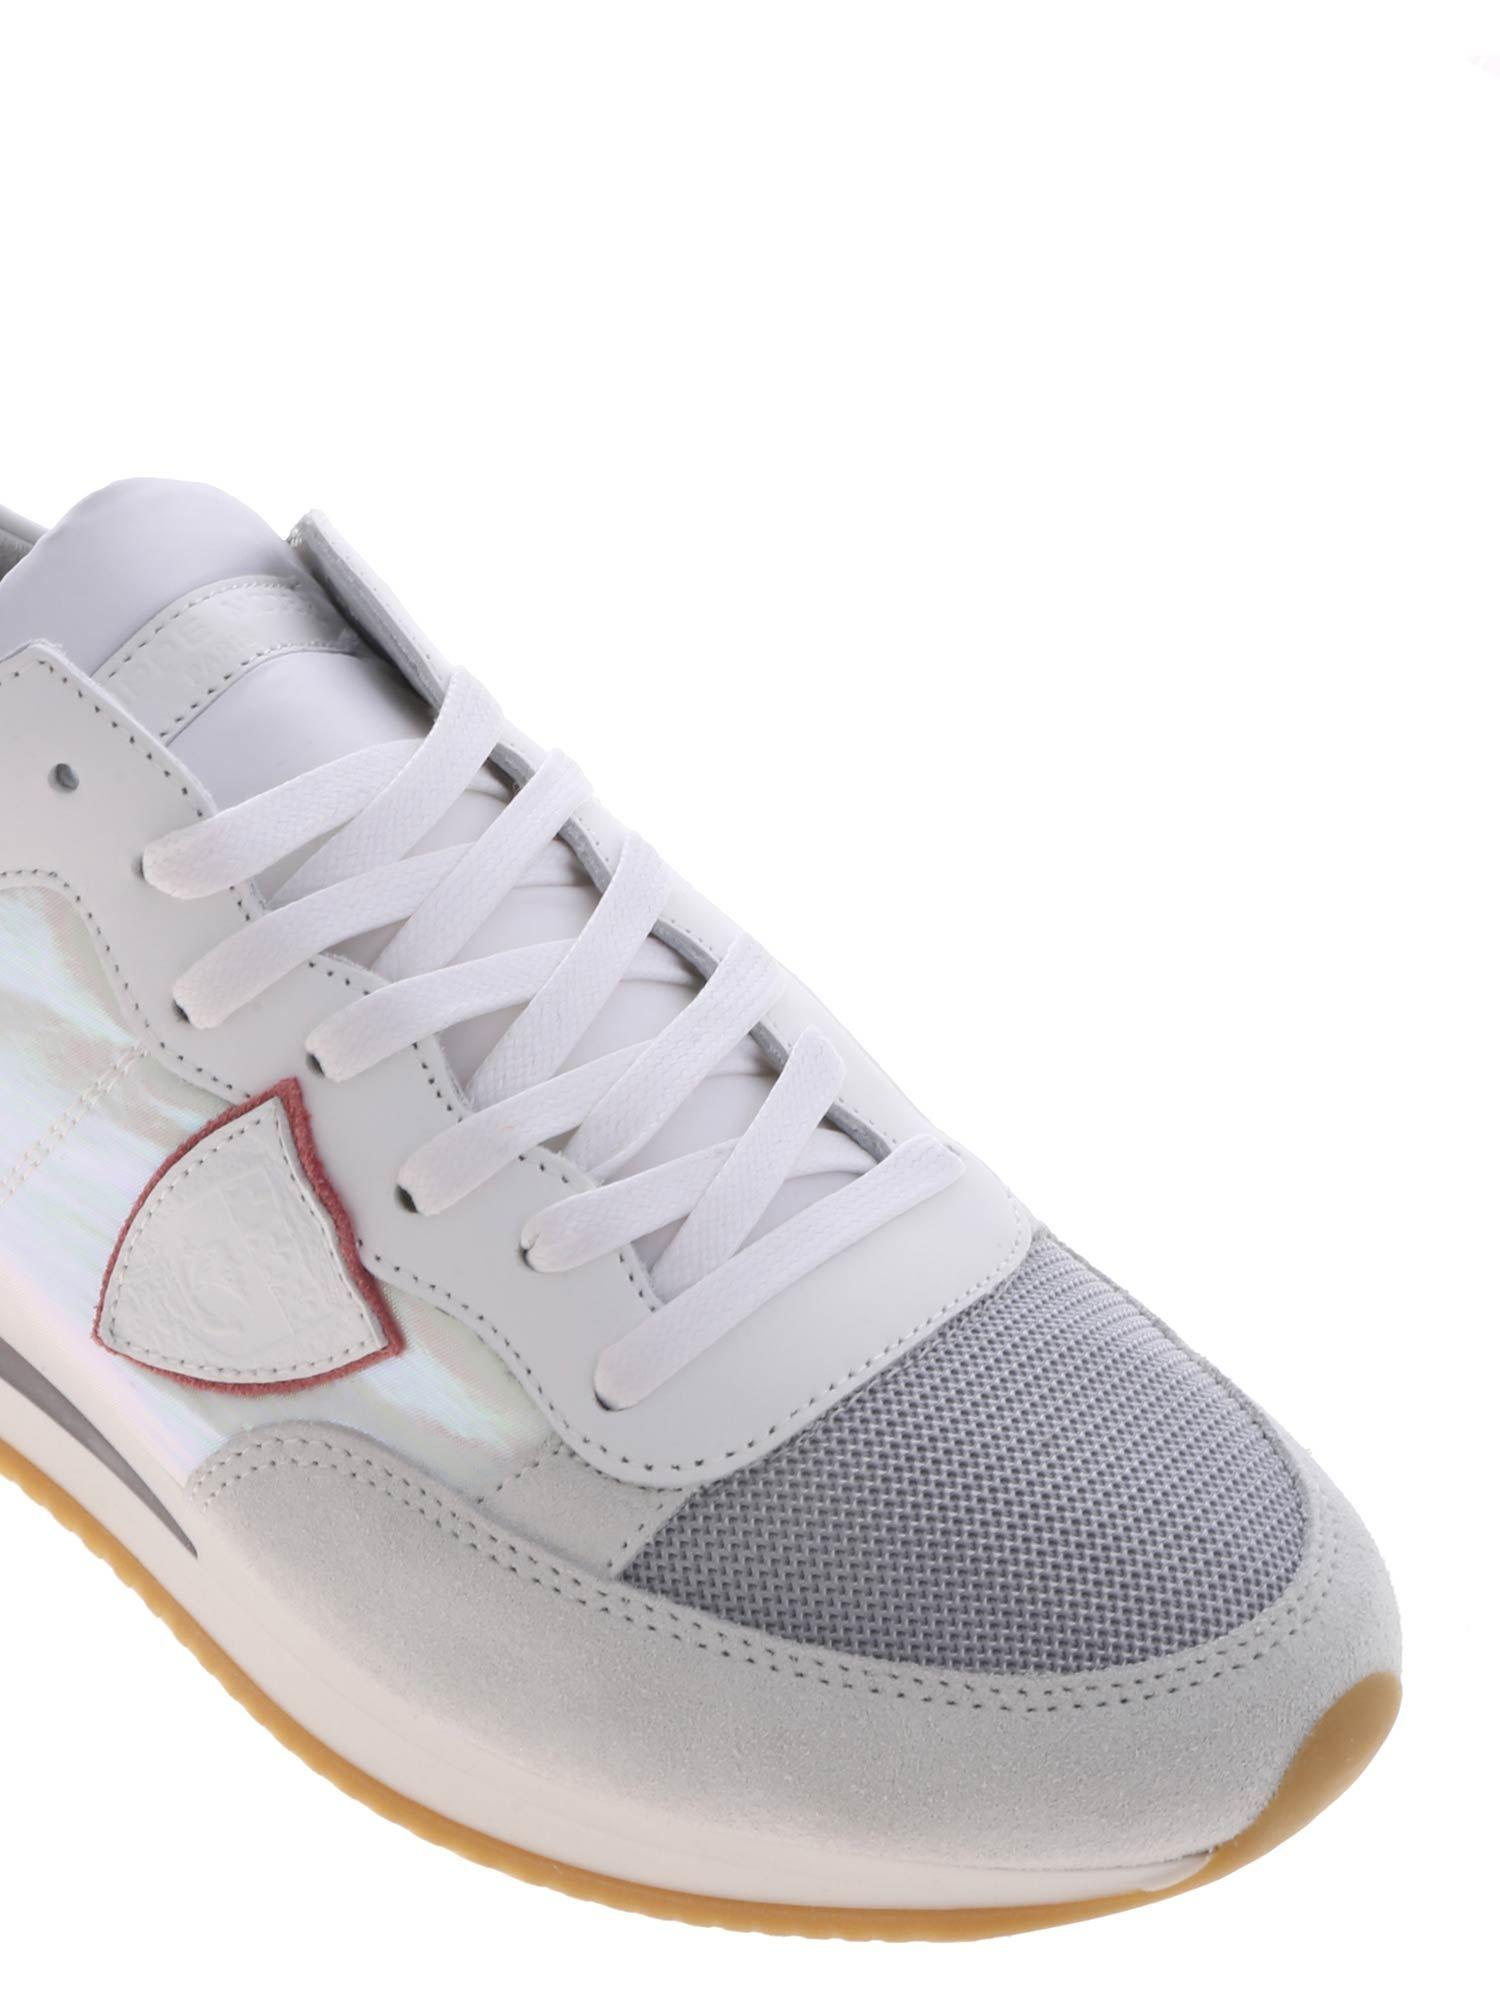 7652f16af Lyst - Philippe Model Tropez Sneakers In White And Pink in White